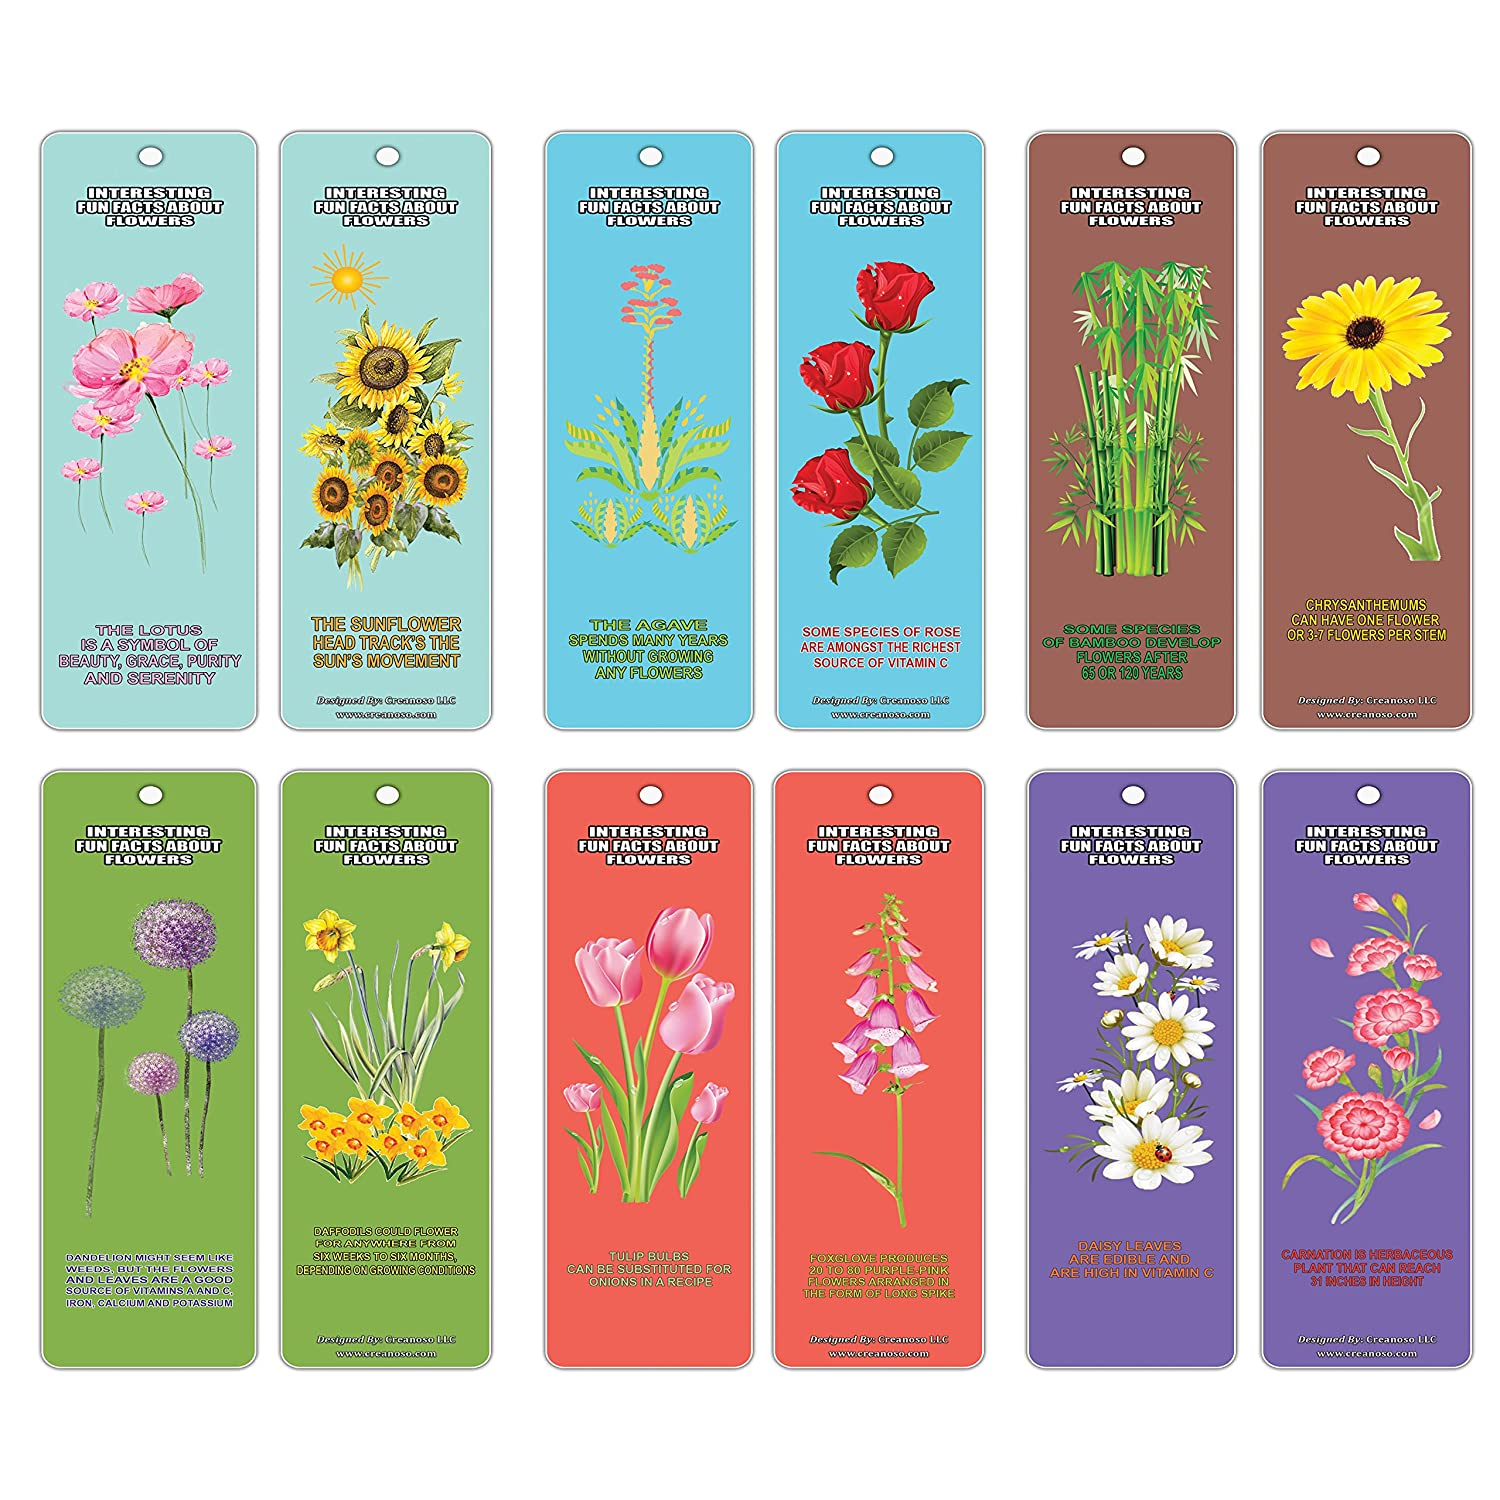 Amazon creanoso flowers fun facts bookmarks 12 pack amazon creanoso flowers fun facts bookmarks 12 pack reading motivation bookmarker cards fun flowers reading time set for boys girls teens izmirmasajfo